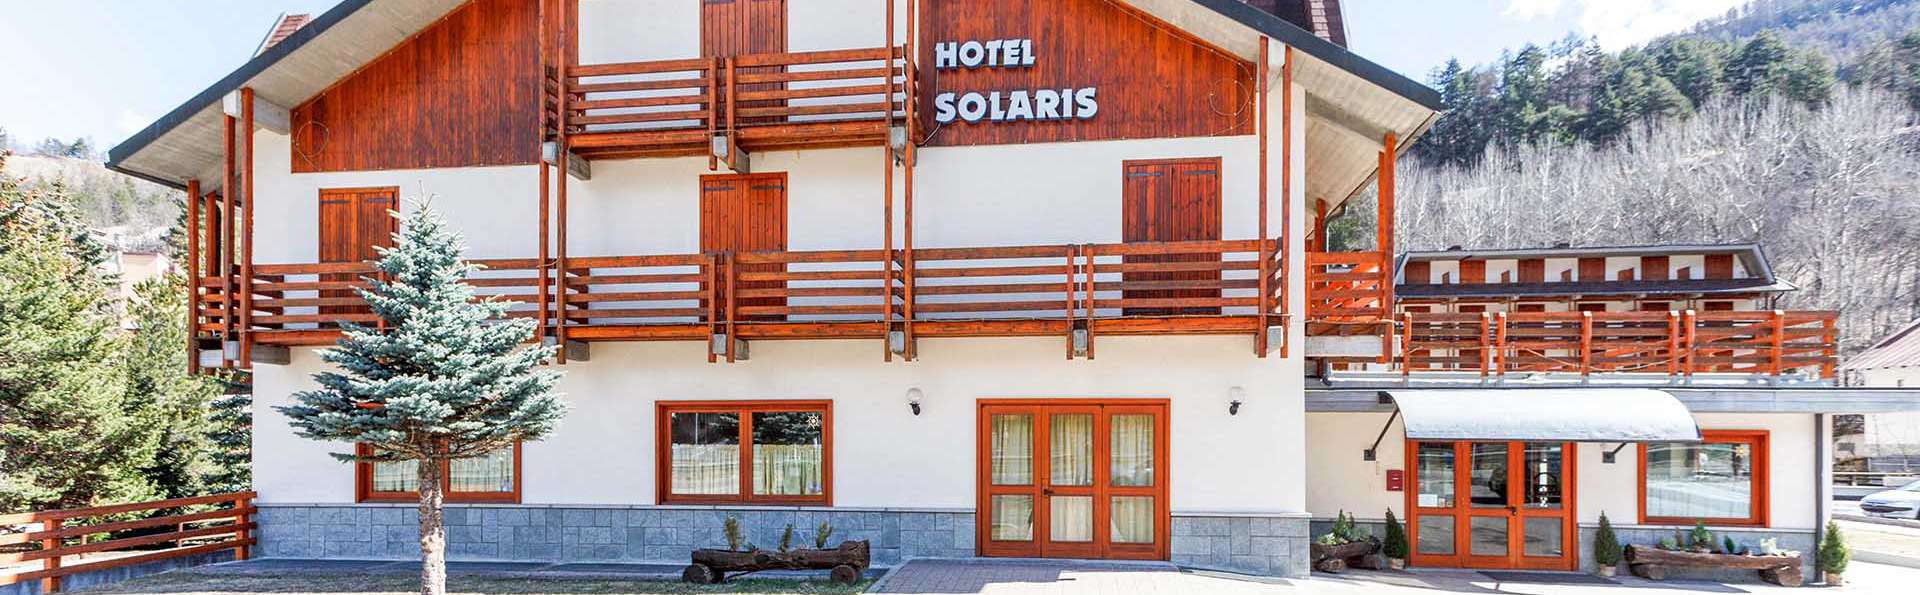 Club Hotel Solaris - EDIT_FRONT_01__2_.jpg